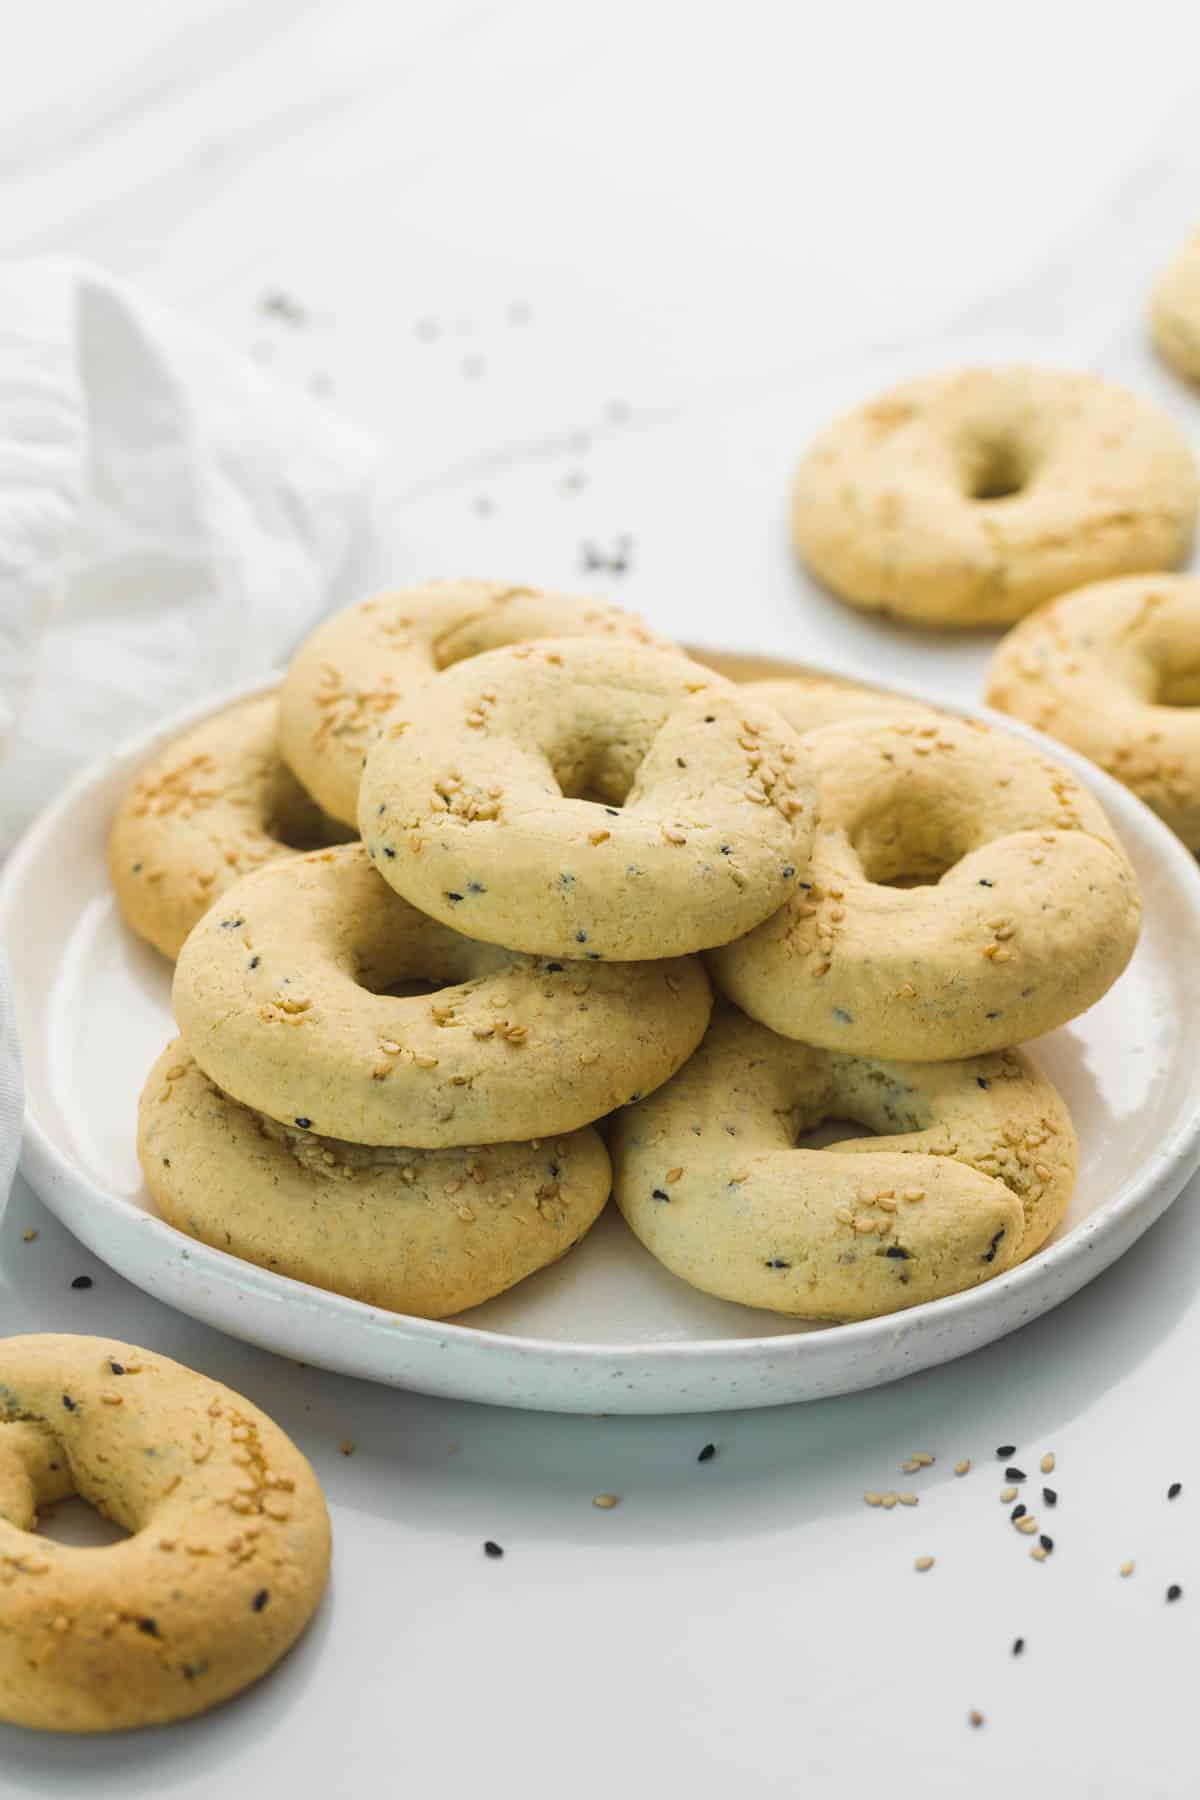 Aniseed cookies stacked in a white plate